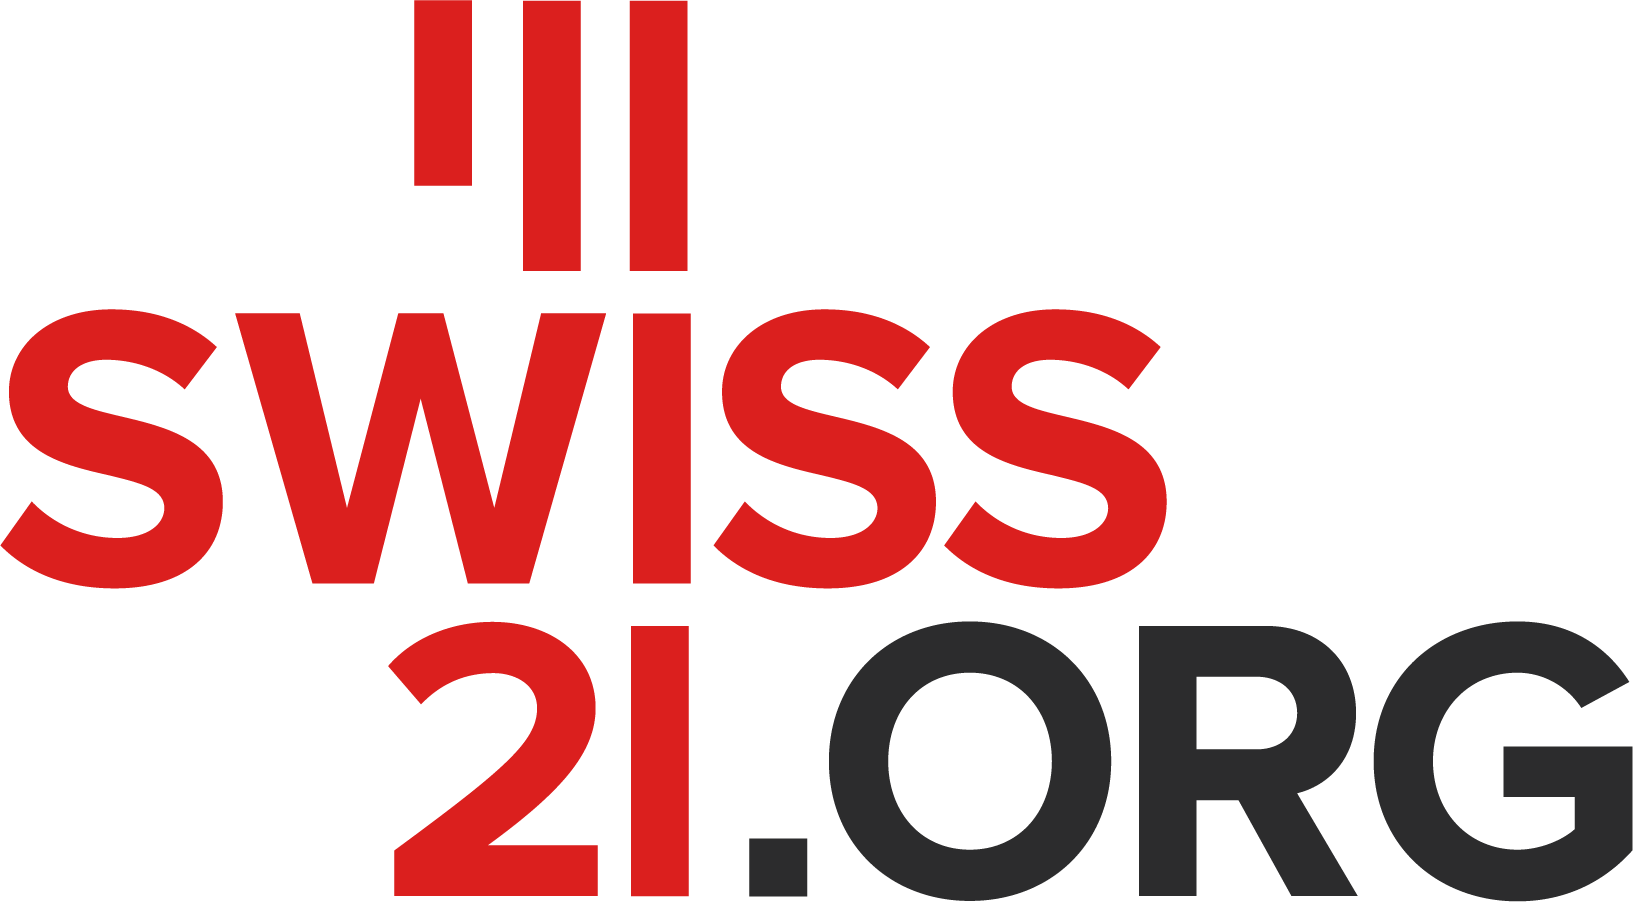 Home page del Centro assistenza Swiss21.org Helpcenter